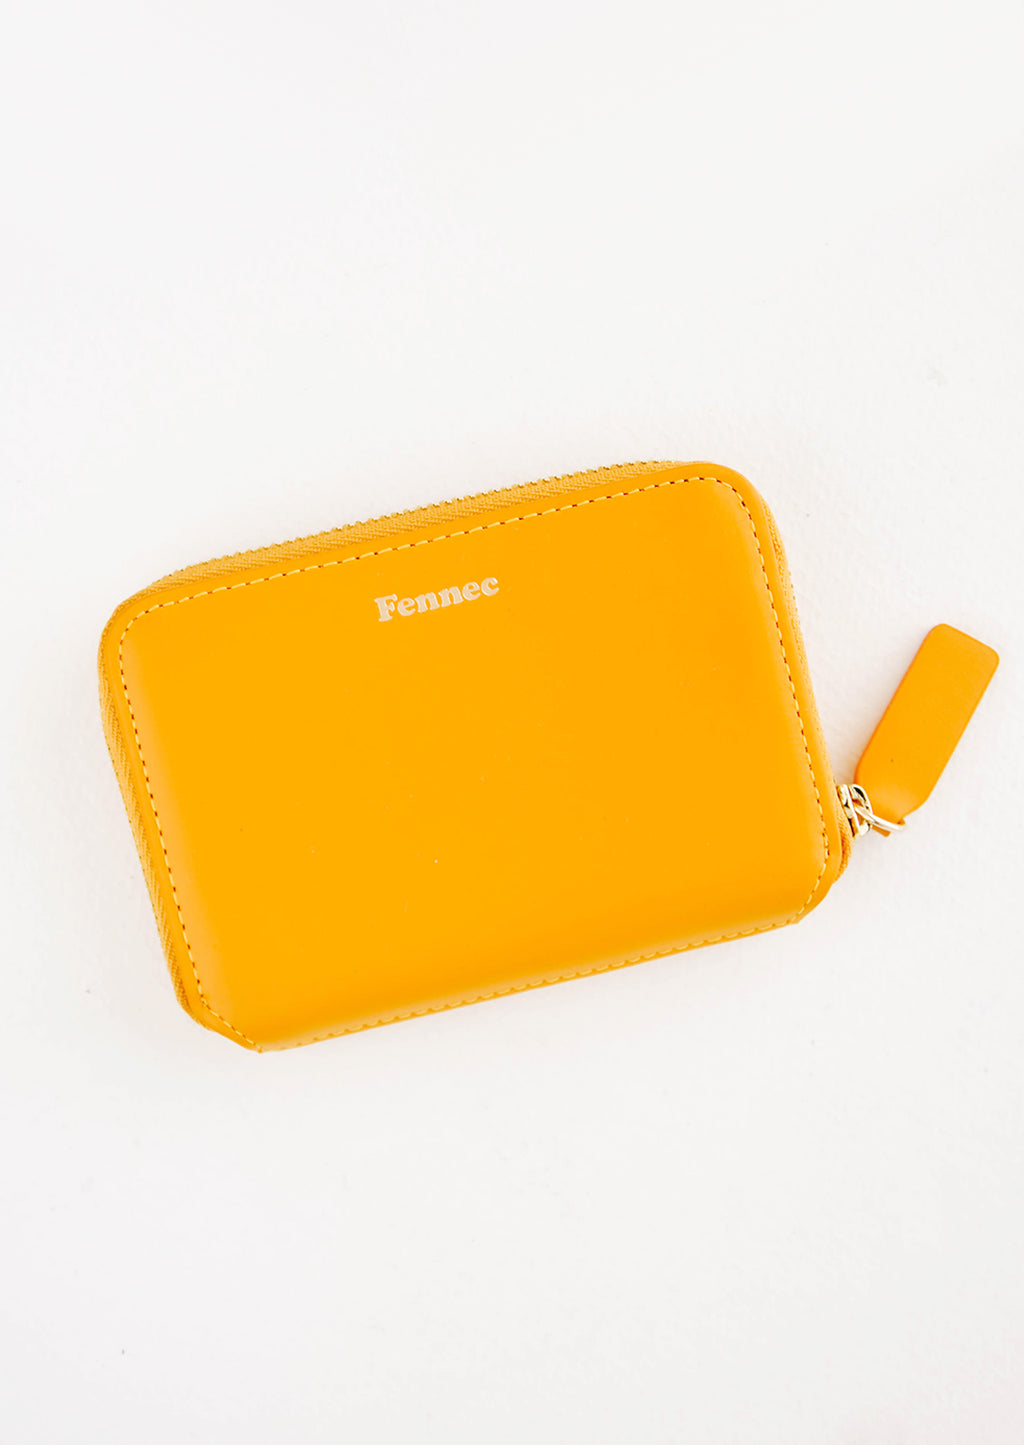 Mandarin: Small orange leather zip wallet with Fennec embossed in small gold letters at top of wallet face.